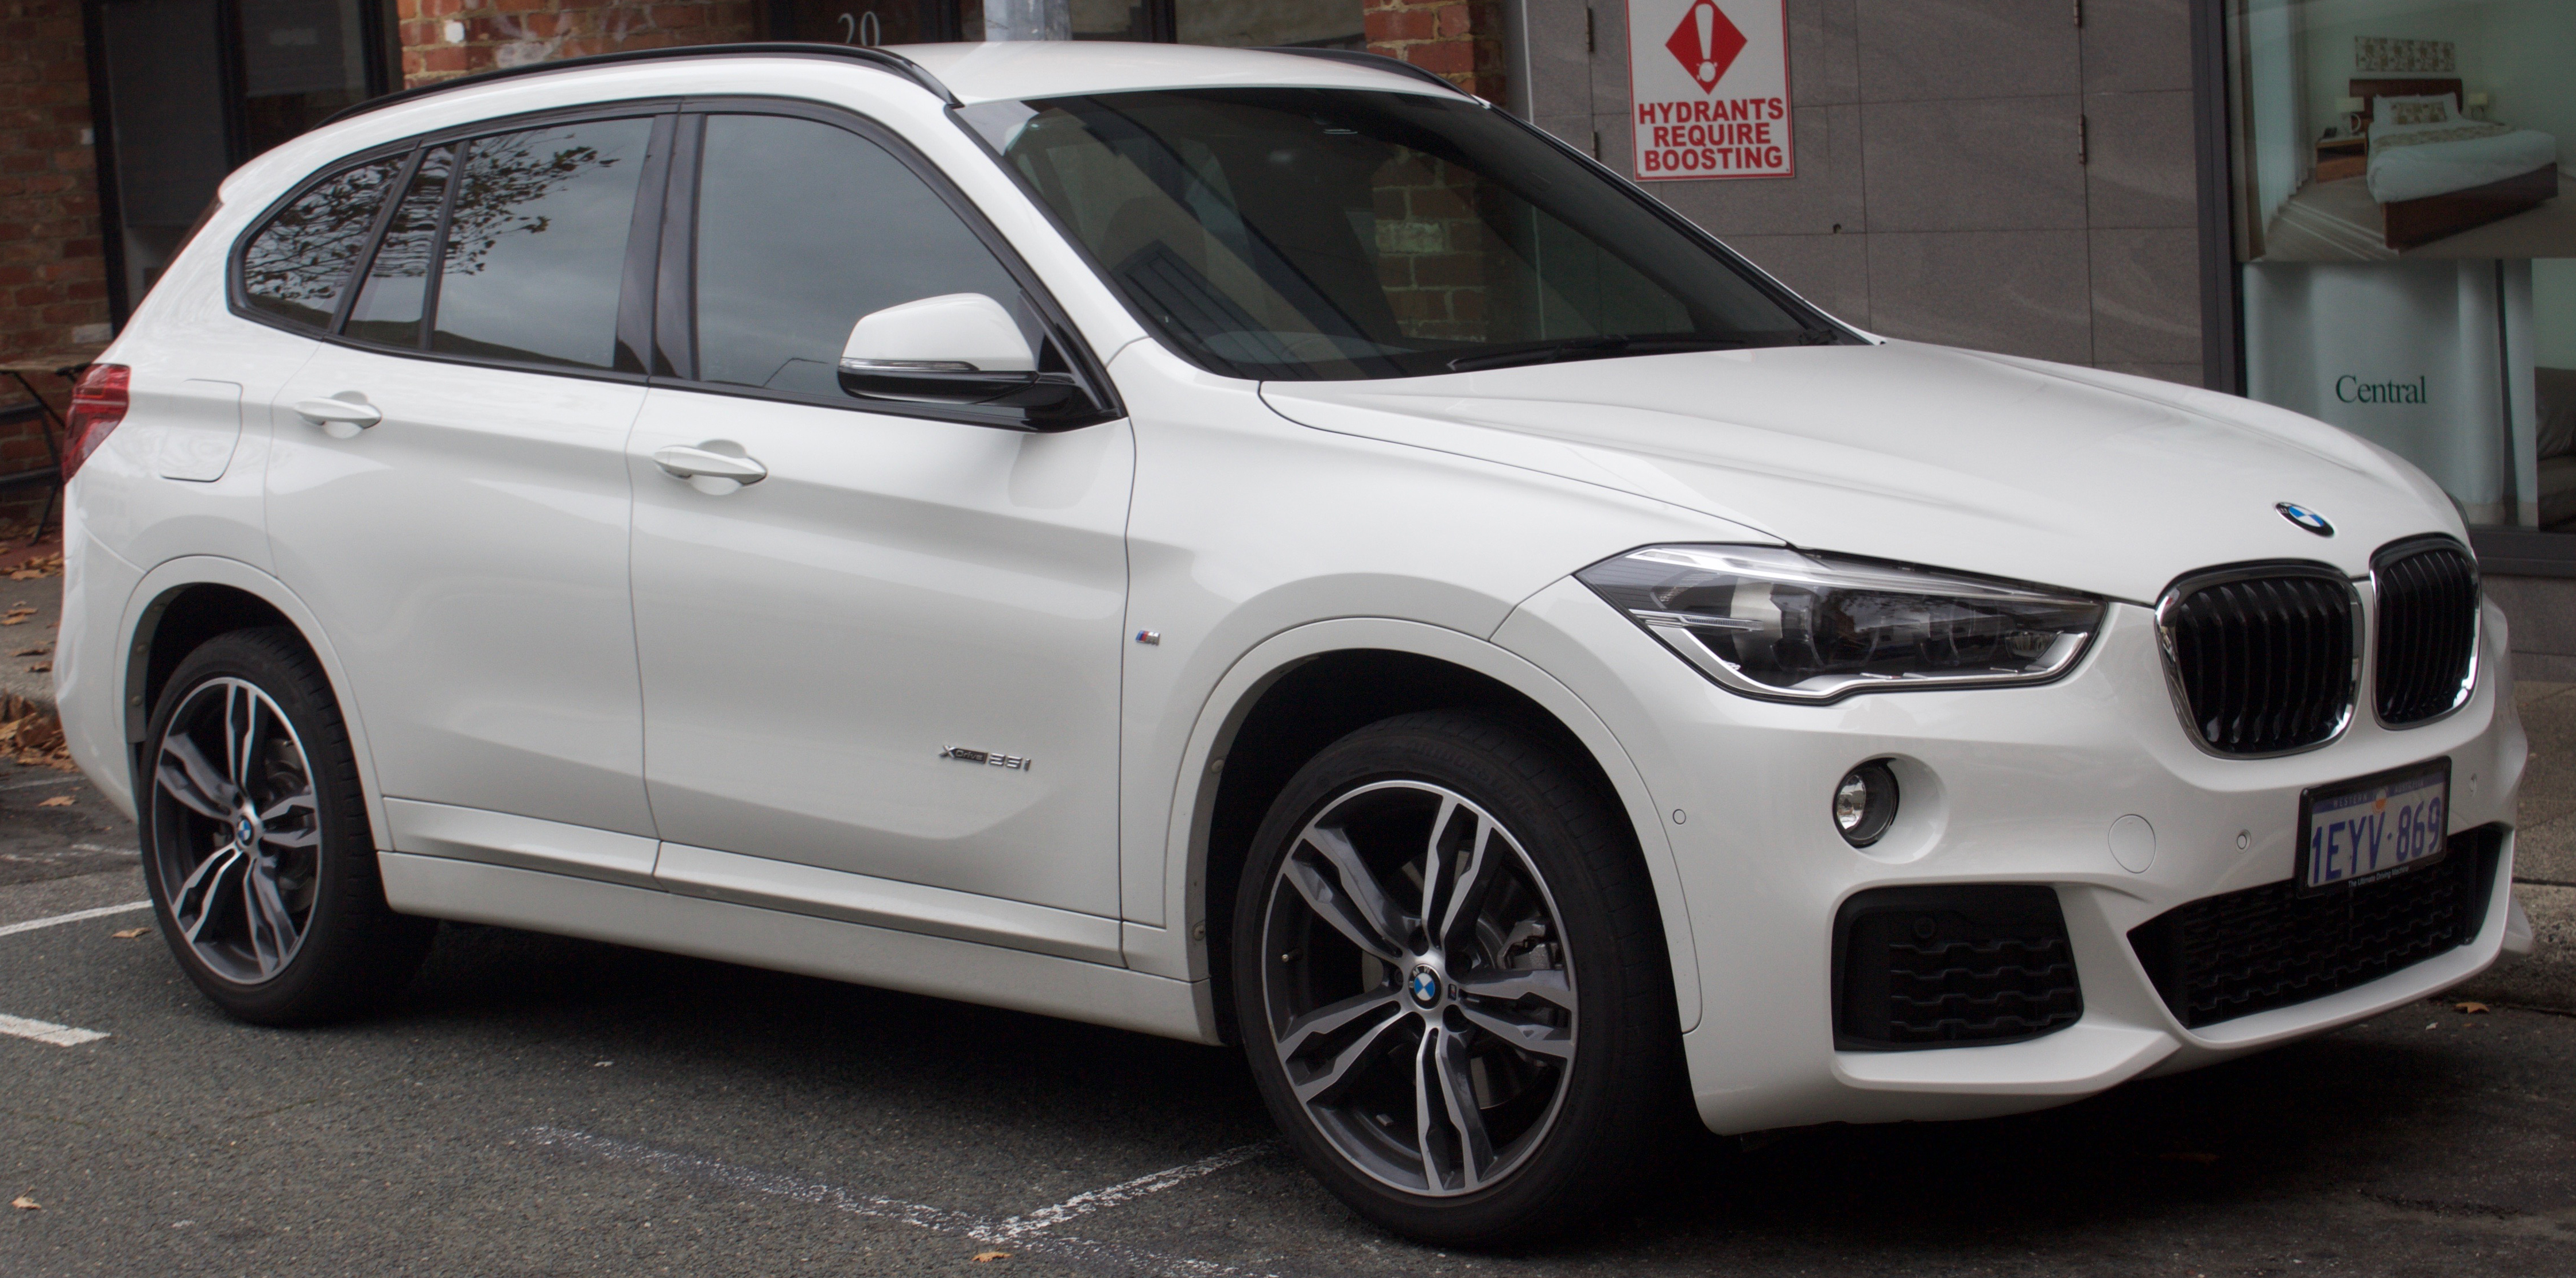 2016_BMW_X1_%28F84%29_xDrive25i_wagon_%282017 07 15%29_01 bmw x1 wikipedia  at edmiracle.co